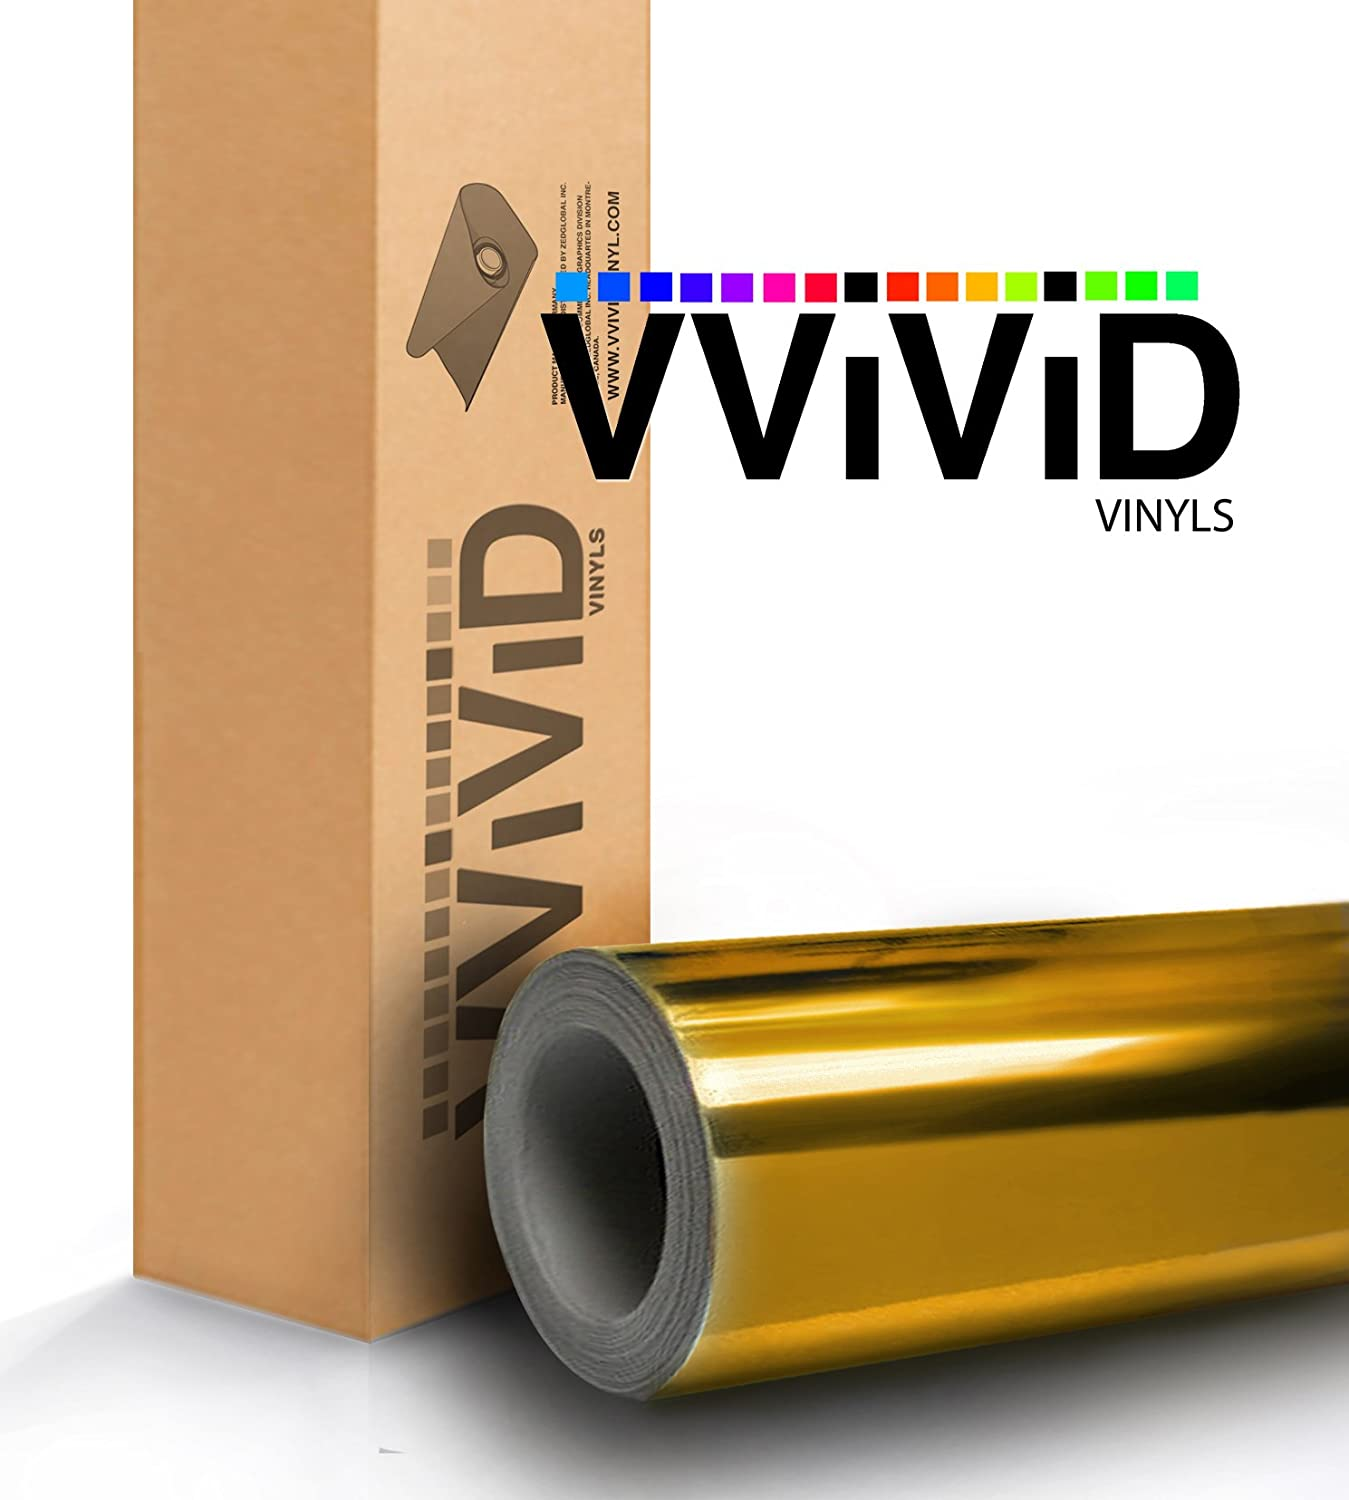 VViViD Gold Brushed Chrome Cast Vinyl Wrap Roll Film Decal Sticker Featuring Air Free Channel Technology 1ft x 5ft